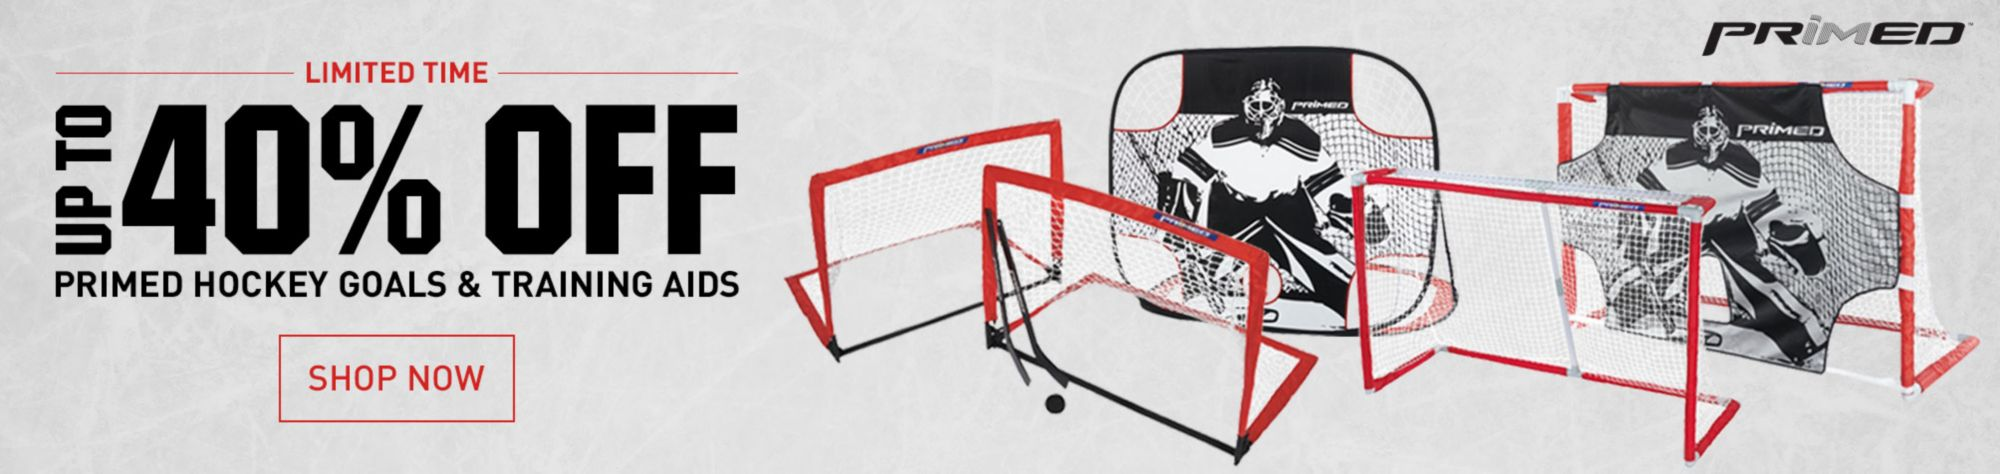 PRIMED Hockey Training Aids